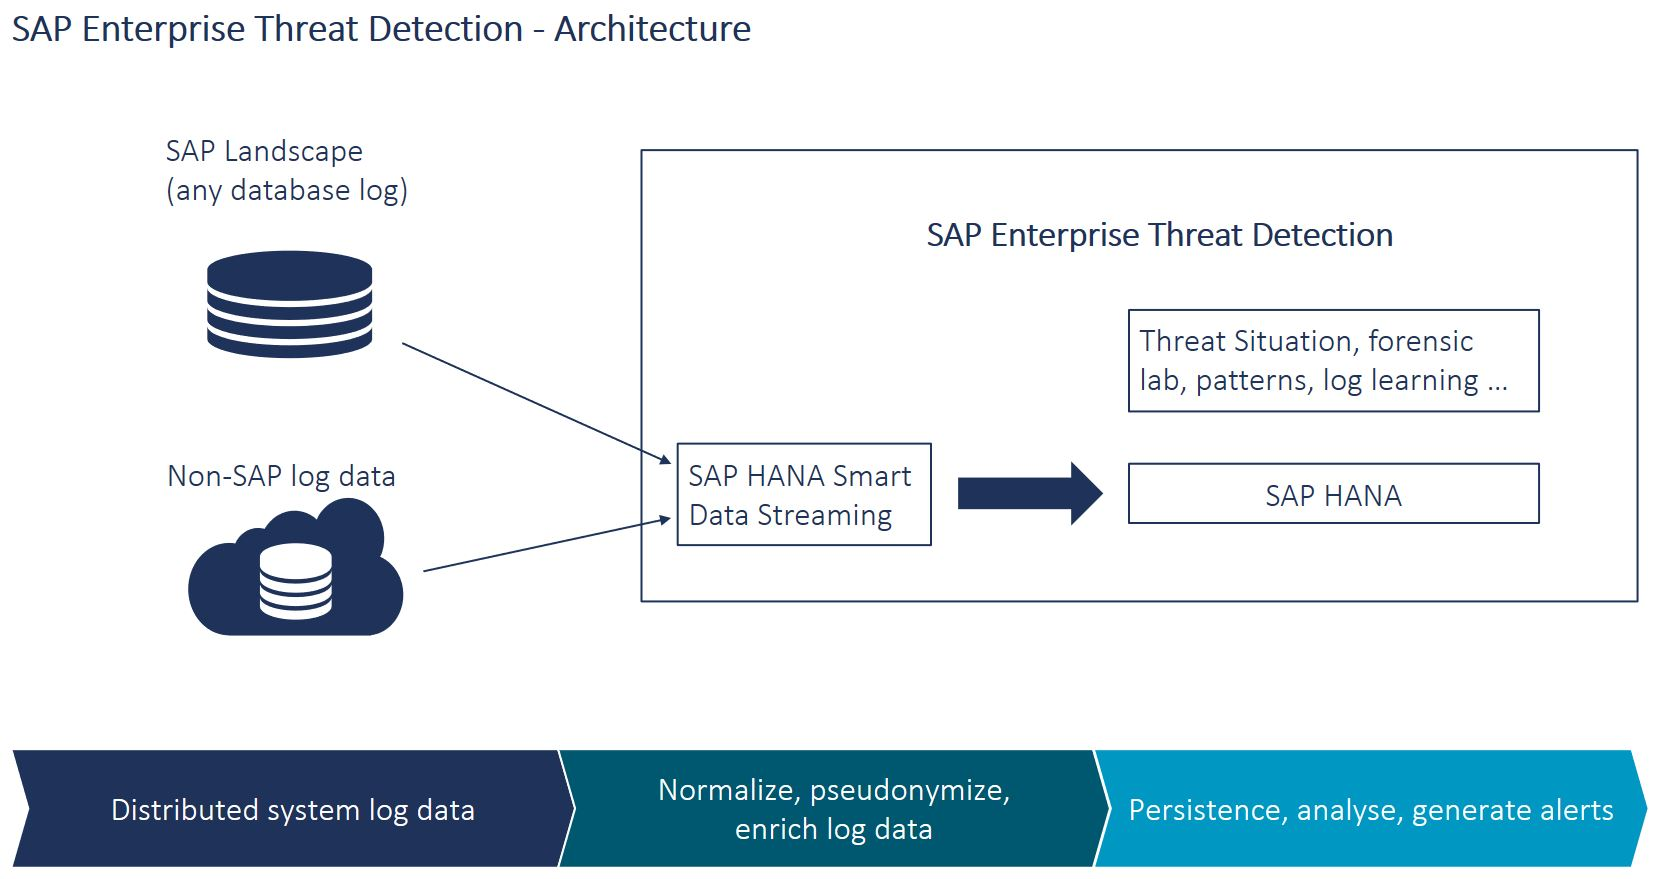 hight resolution of sap etd helps security administrators to detect monitor and analyze security events to provide insight into what is happening throughout heterogeneous